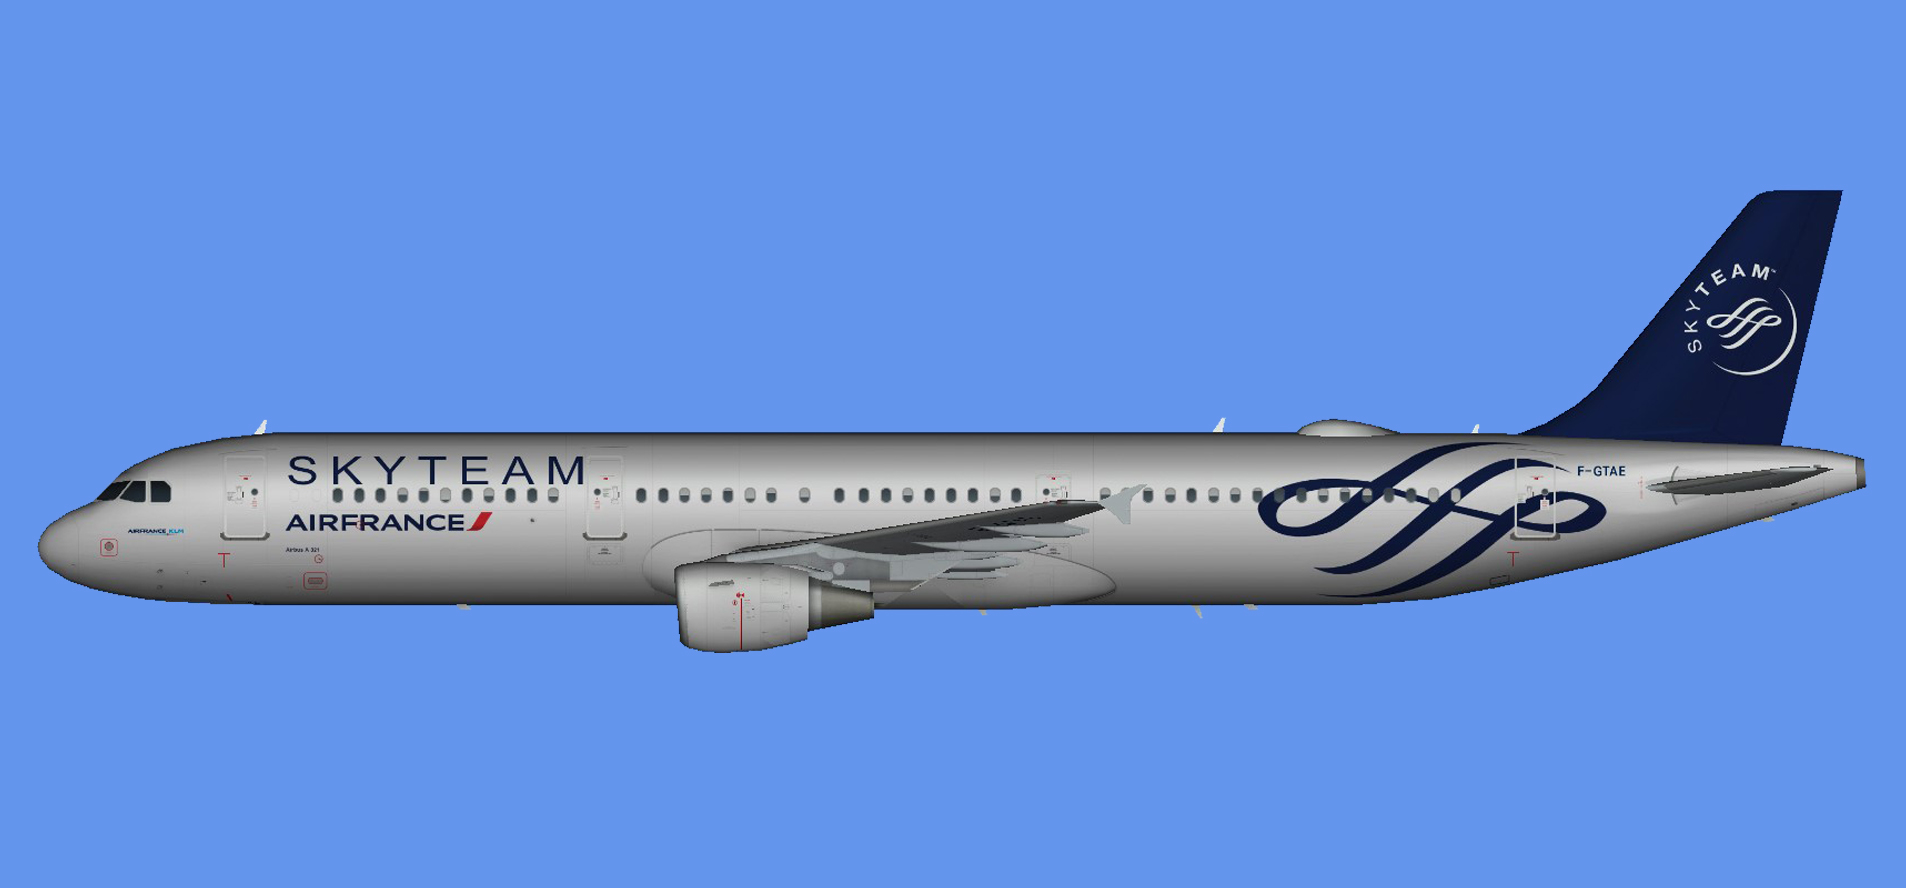 Air France Airbus A321 Skyteam